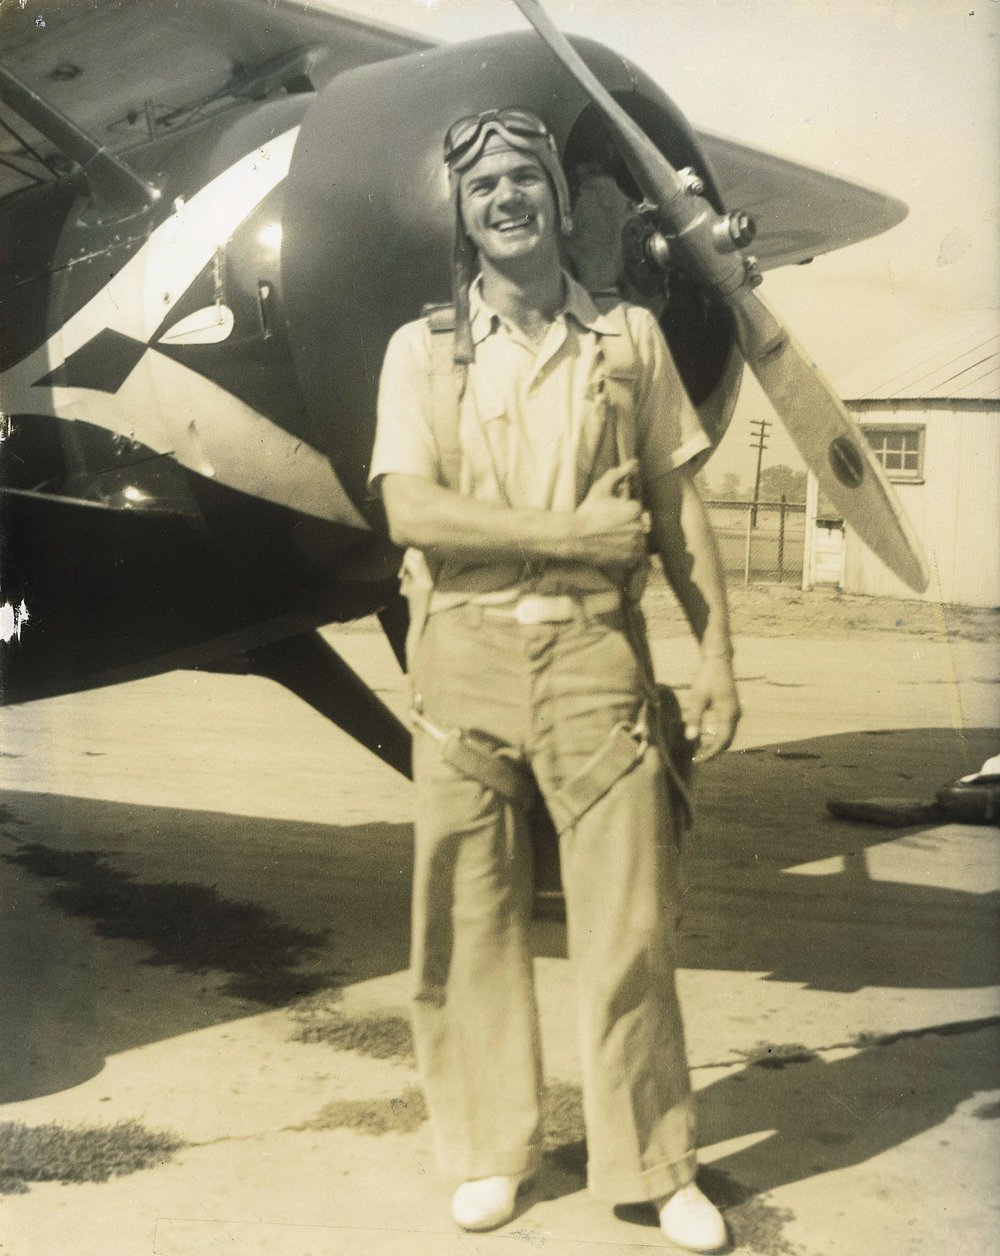 ABOVE: My grandfather, Norbert, who worked as a flight instructor teaching World War II pilots how to fly.